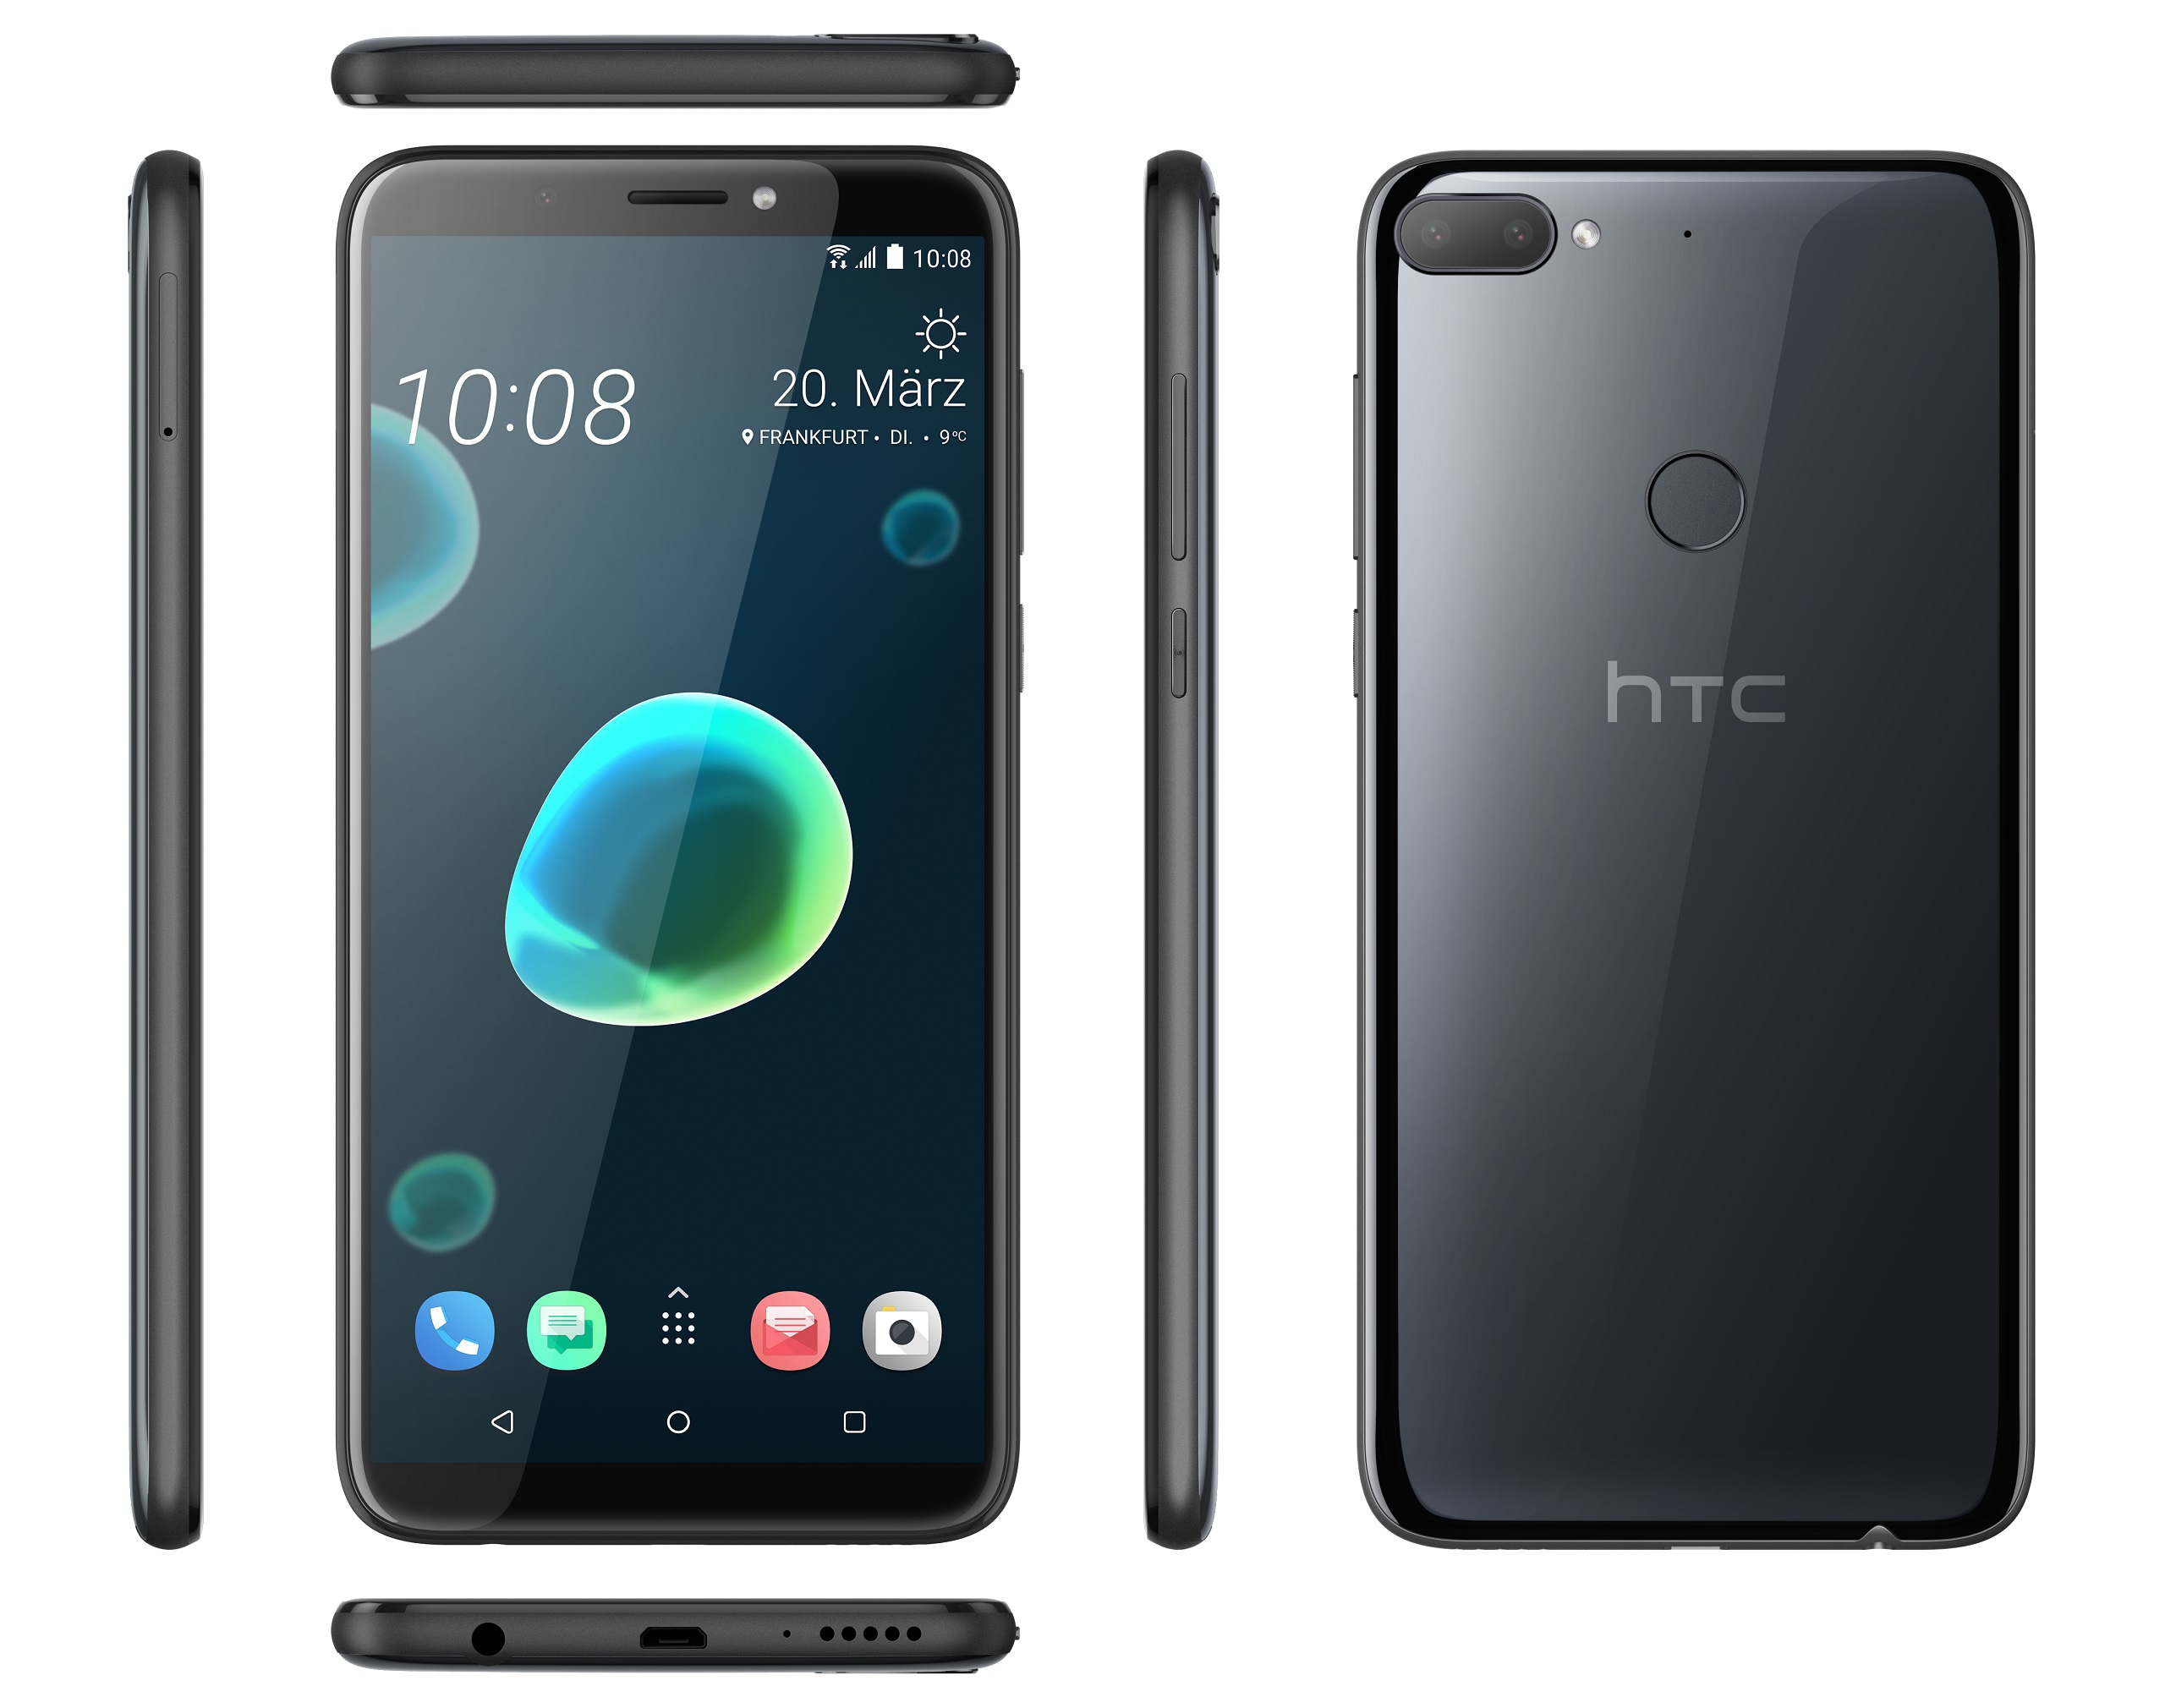 The HTC Desire 12 Plus Has Two Speakers One Is On Underside Of Device And Other Above Display Full Resolution